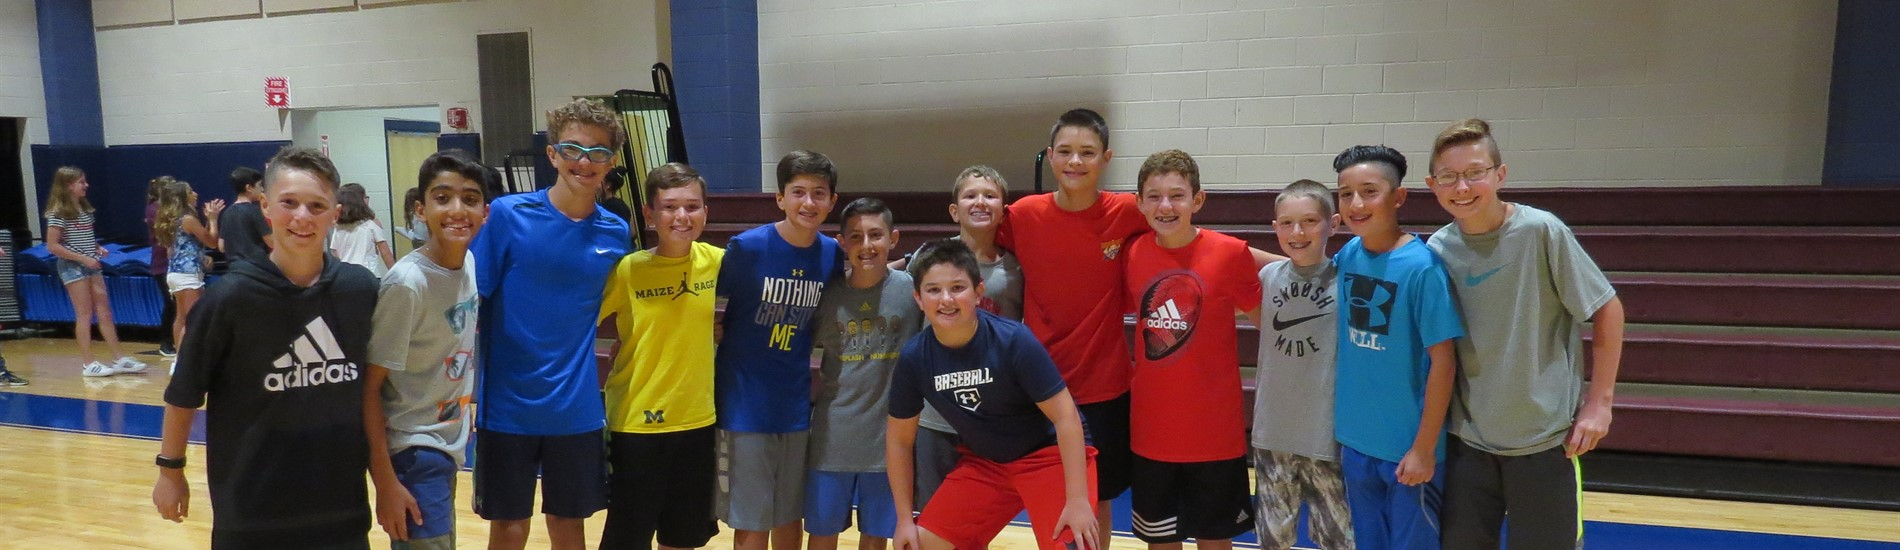 WCMS boys in gymnasium during lunch recess